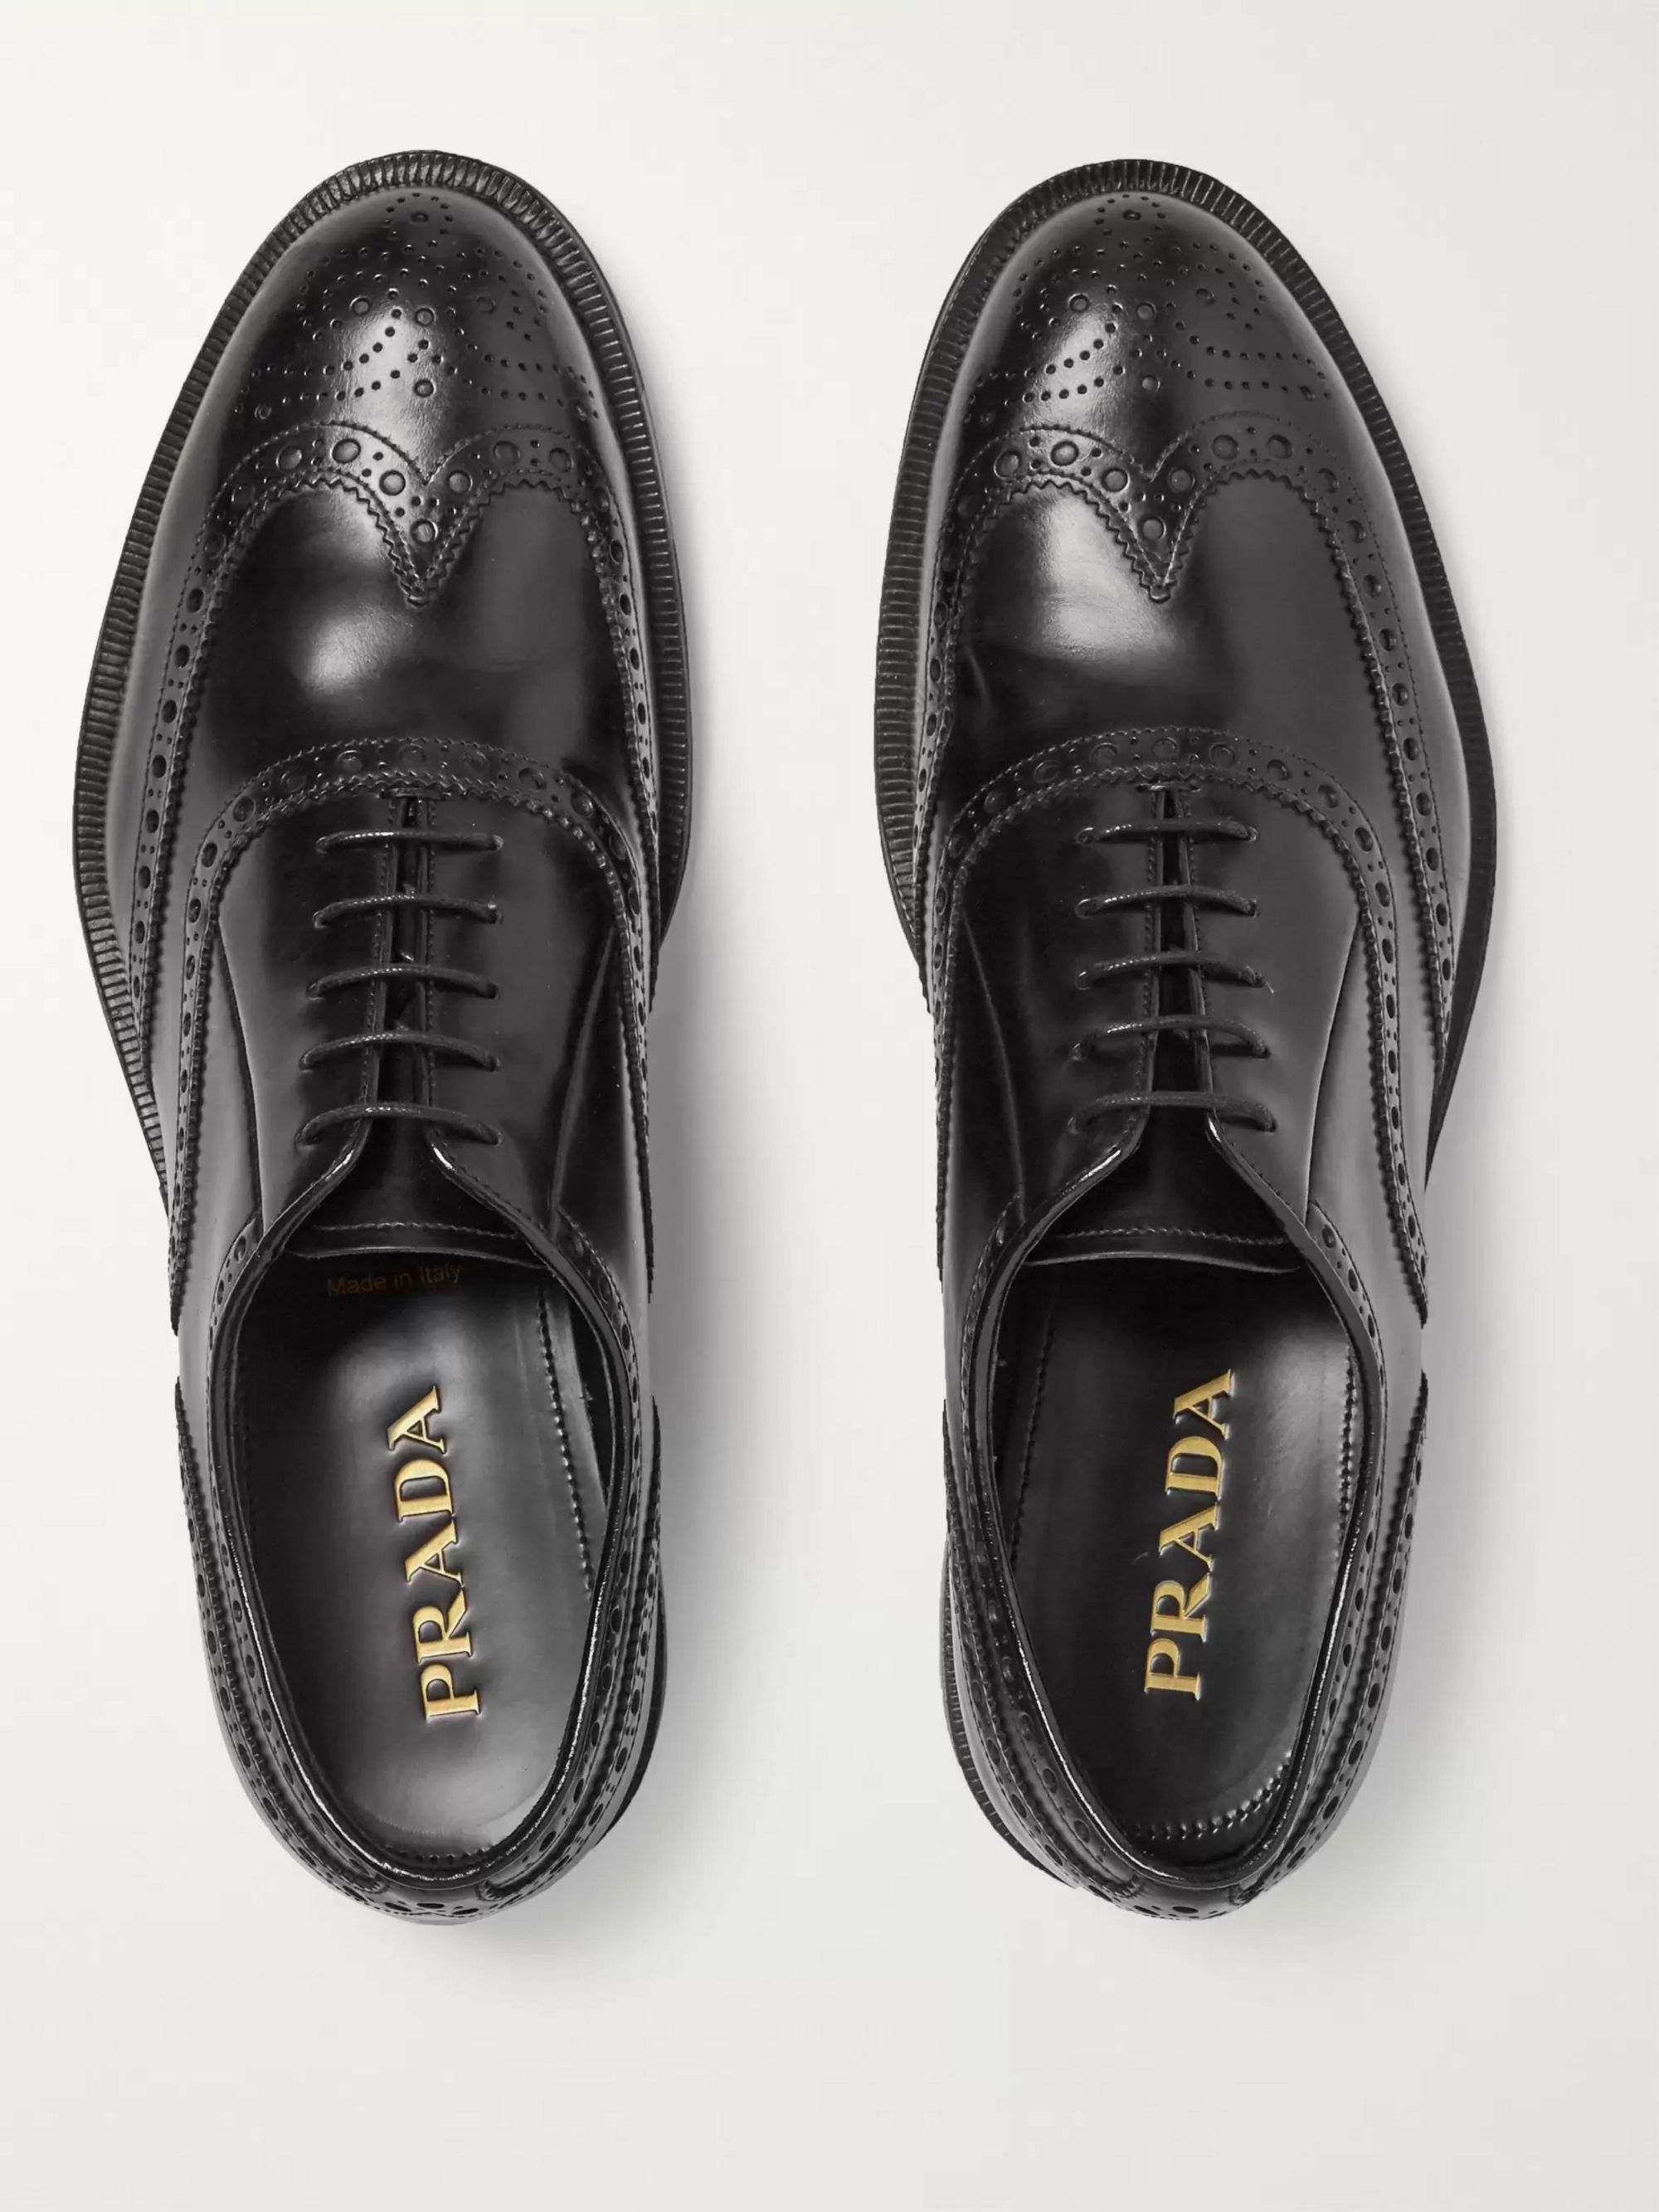 Prada Leather Wingtip Brogues